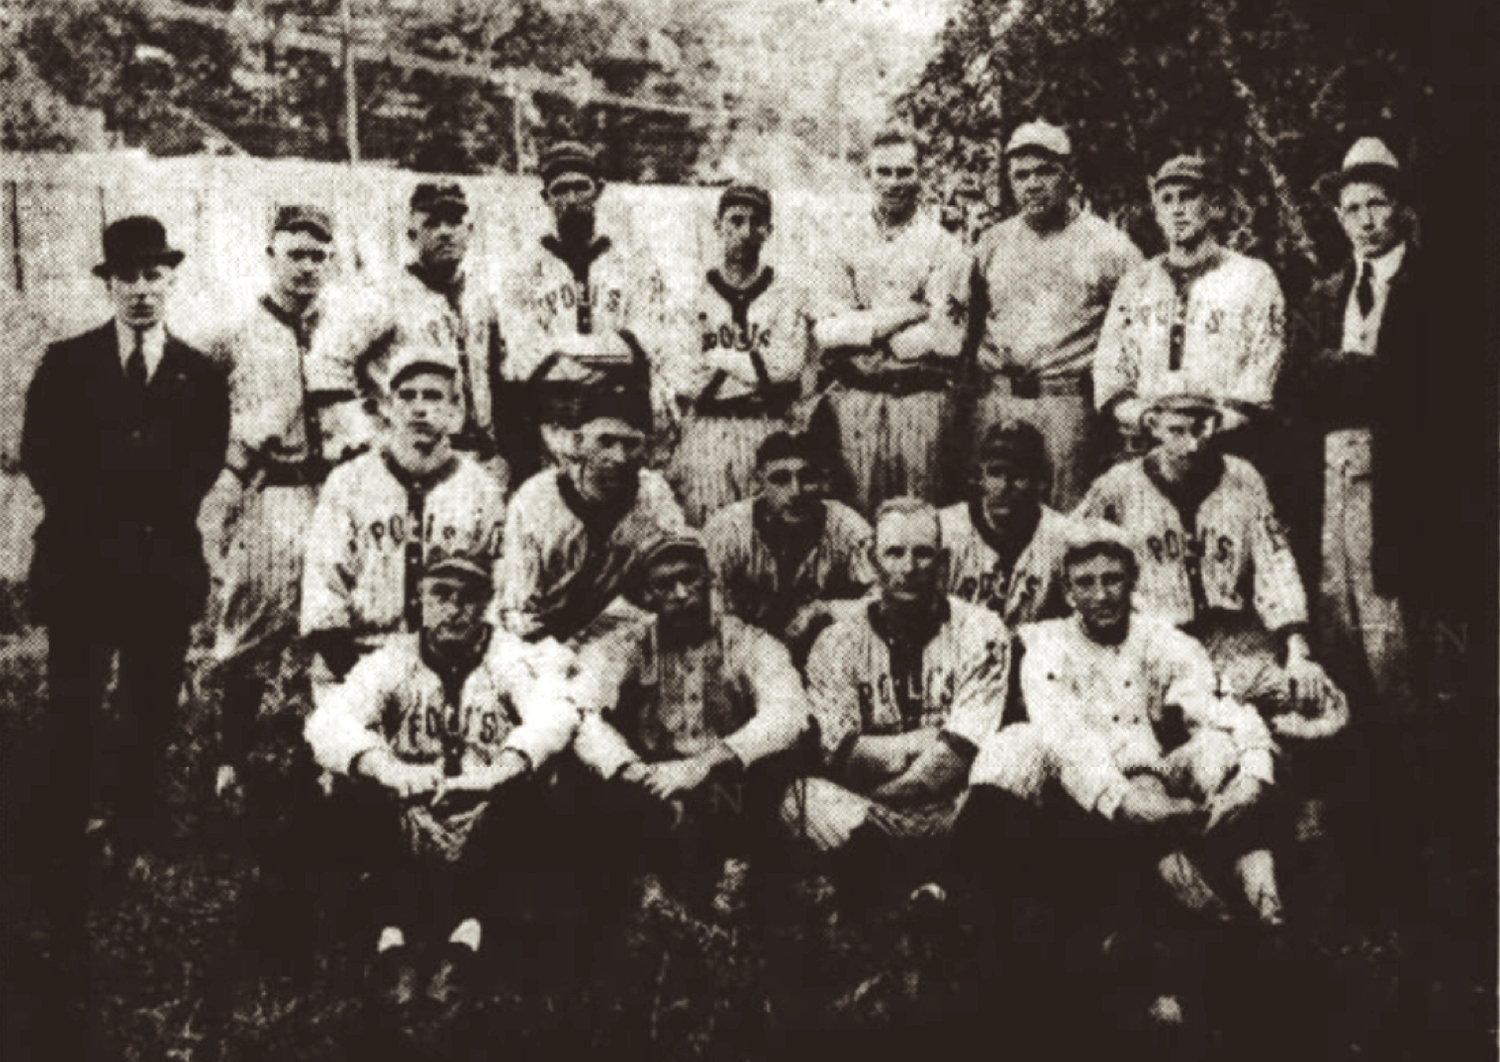 1918 Hartford Poli's Baseball Club with Babe Ruth (back row, third from right).